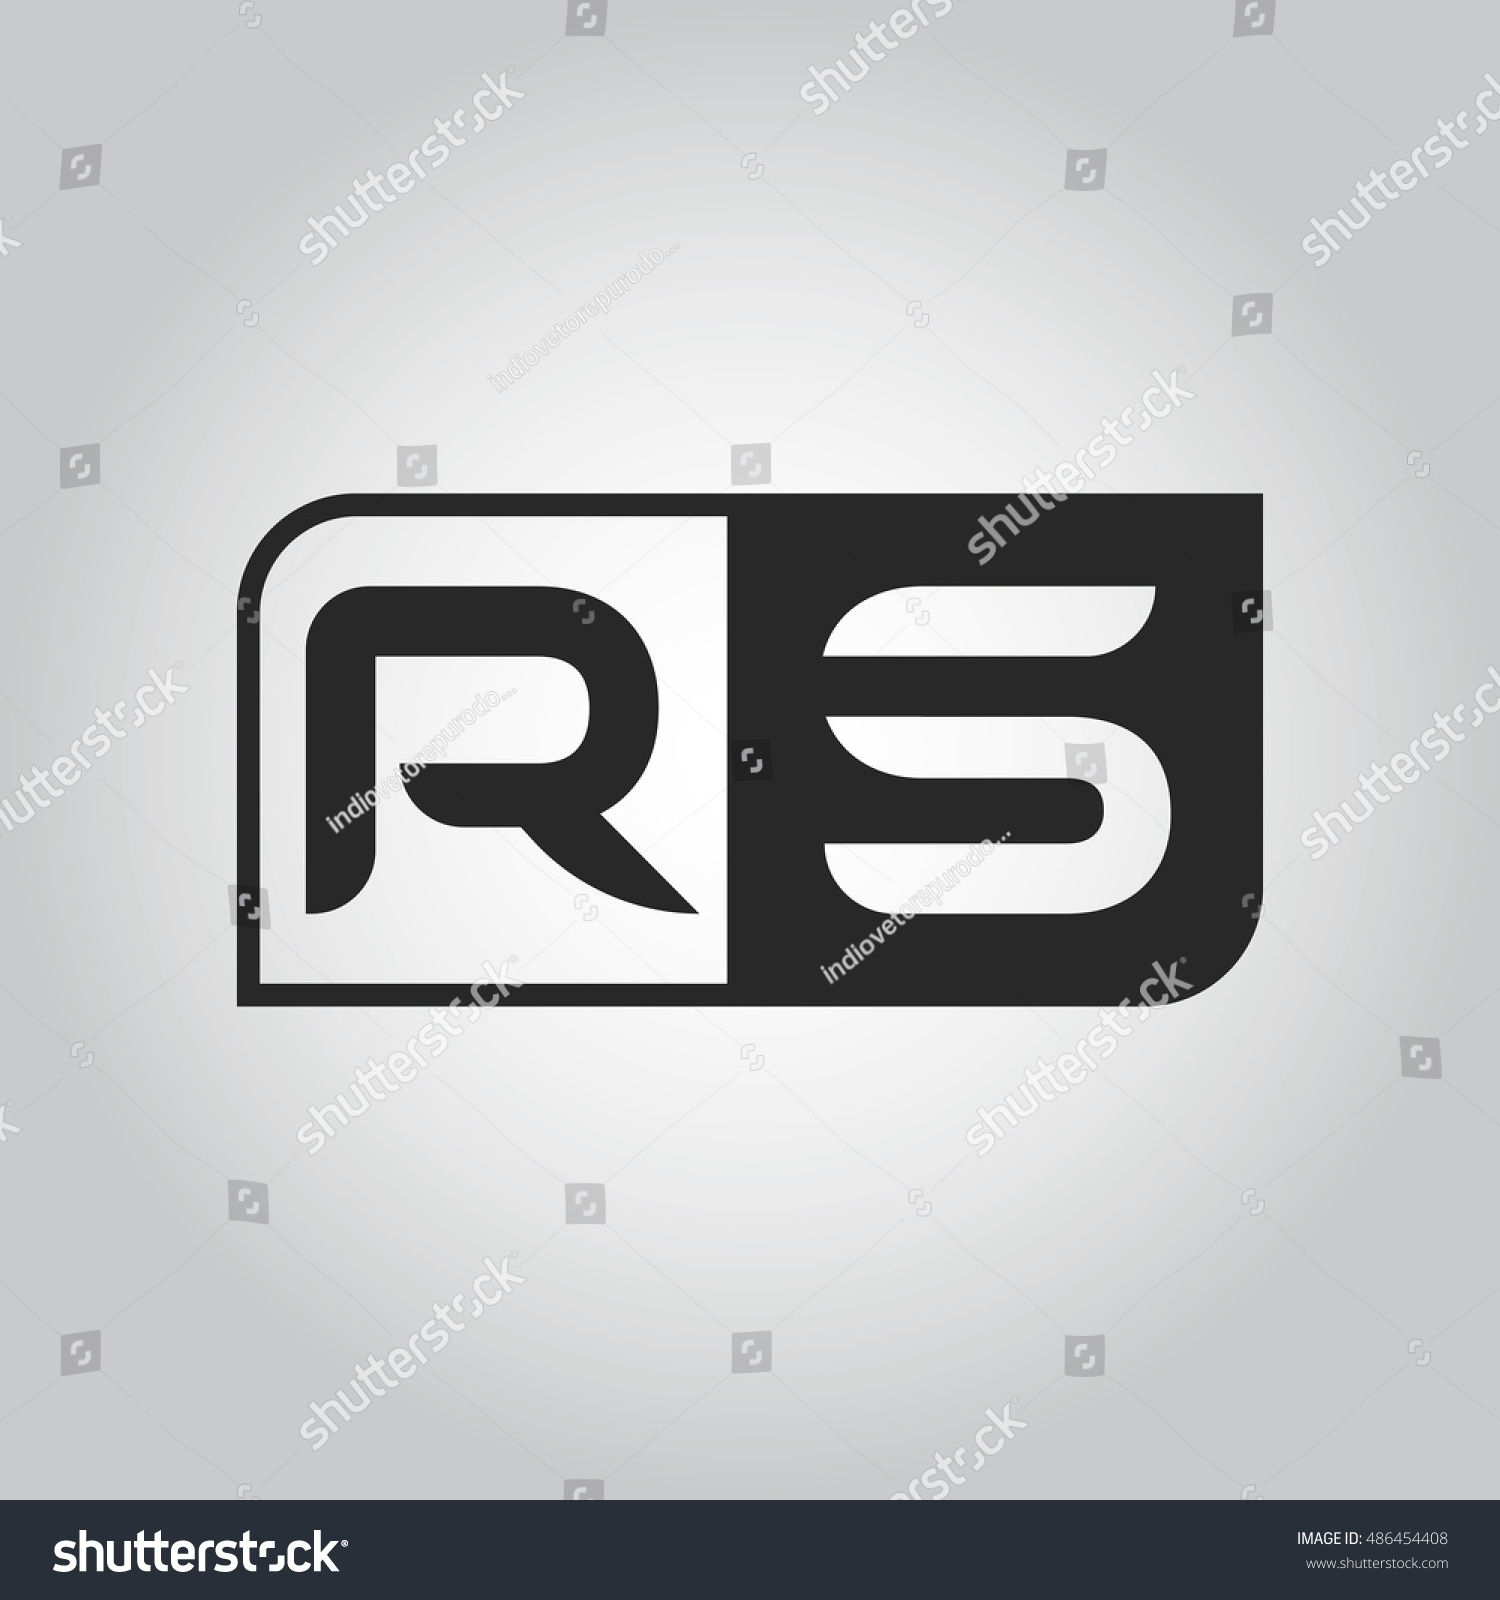 Logo letter rs two different sides stock vector 486454408 shutterstock logo letter rs with two different sides negative or black and white vector template design buycottarizona Image collections